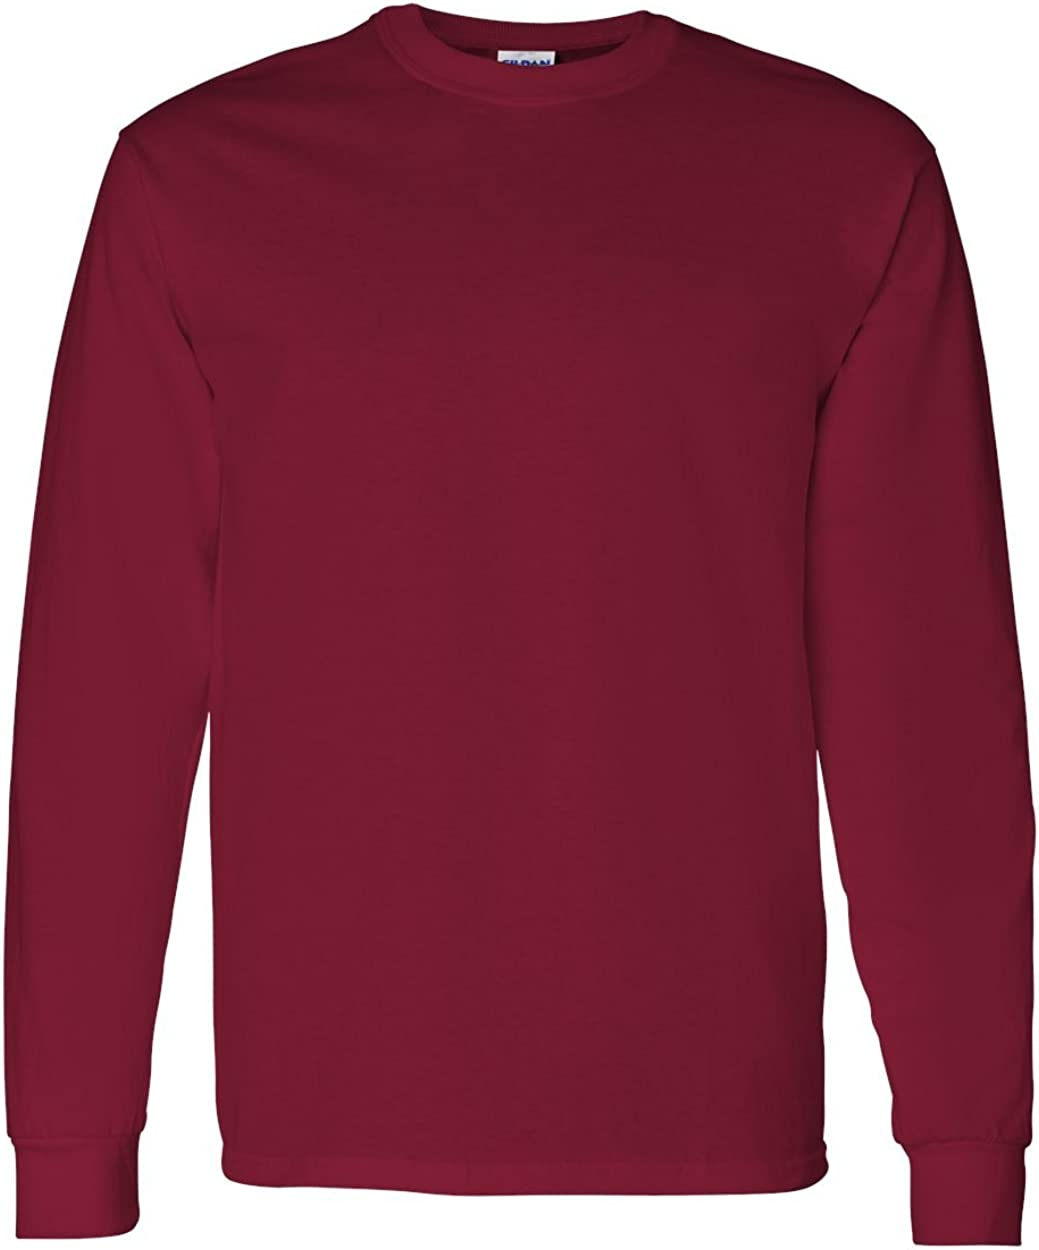 Gildan Heavy Cotton 100% Cotton Long Sleeve T-Shirt.